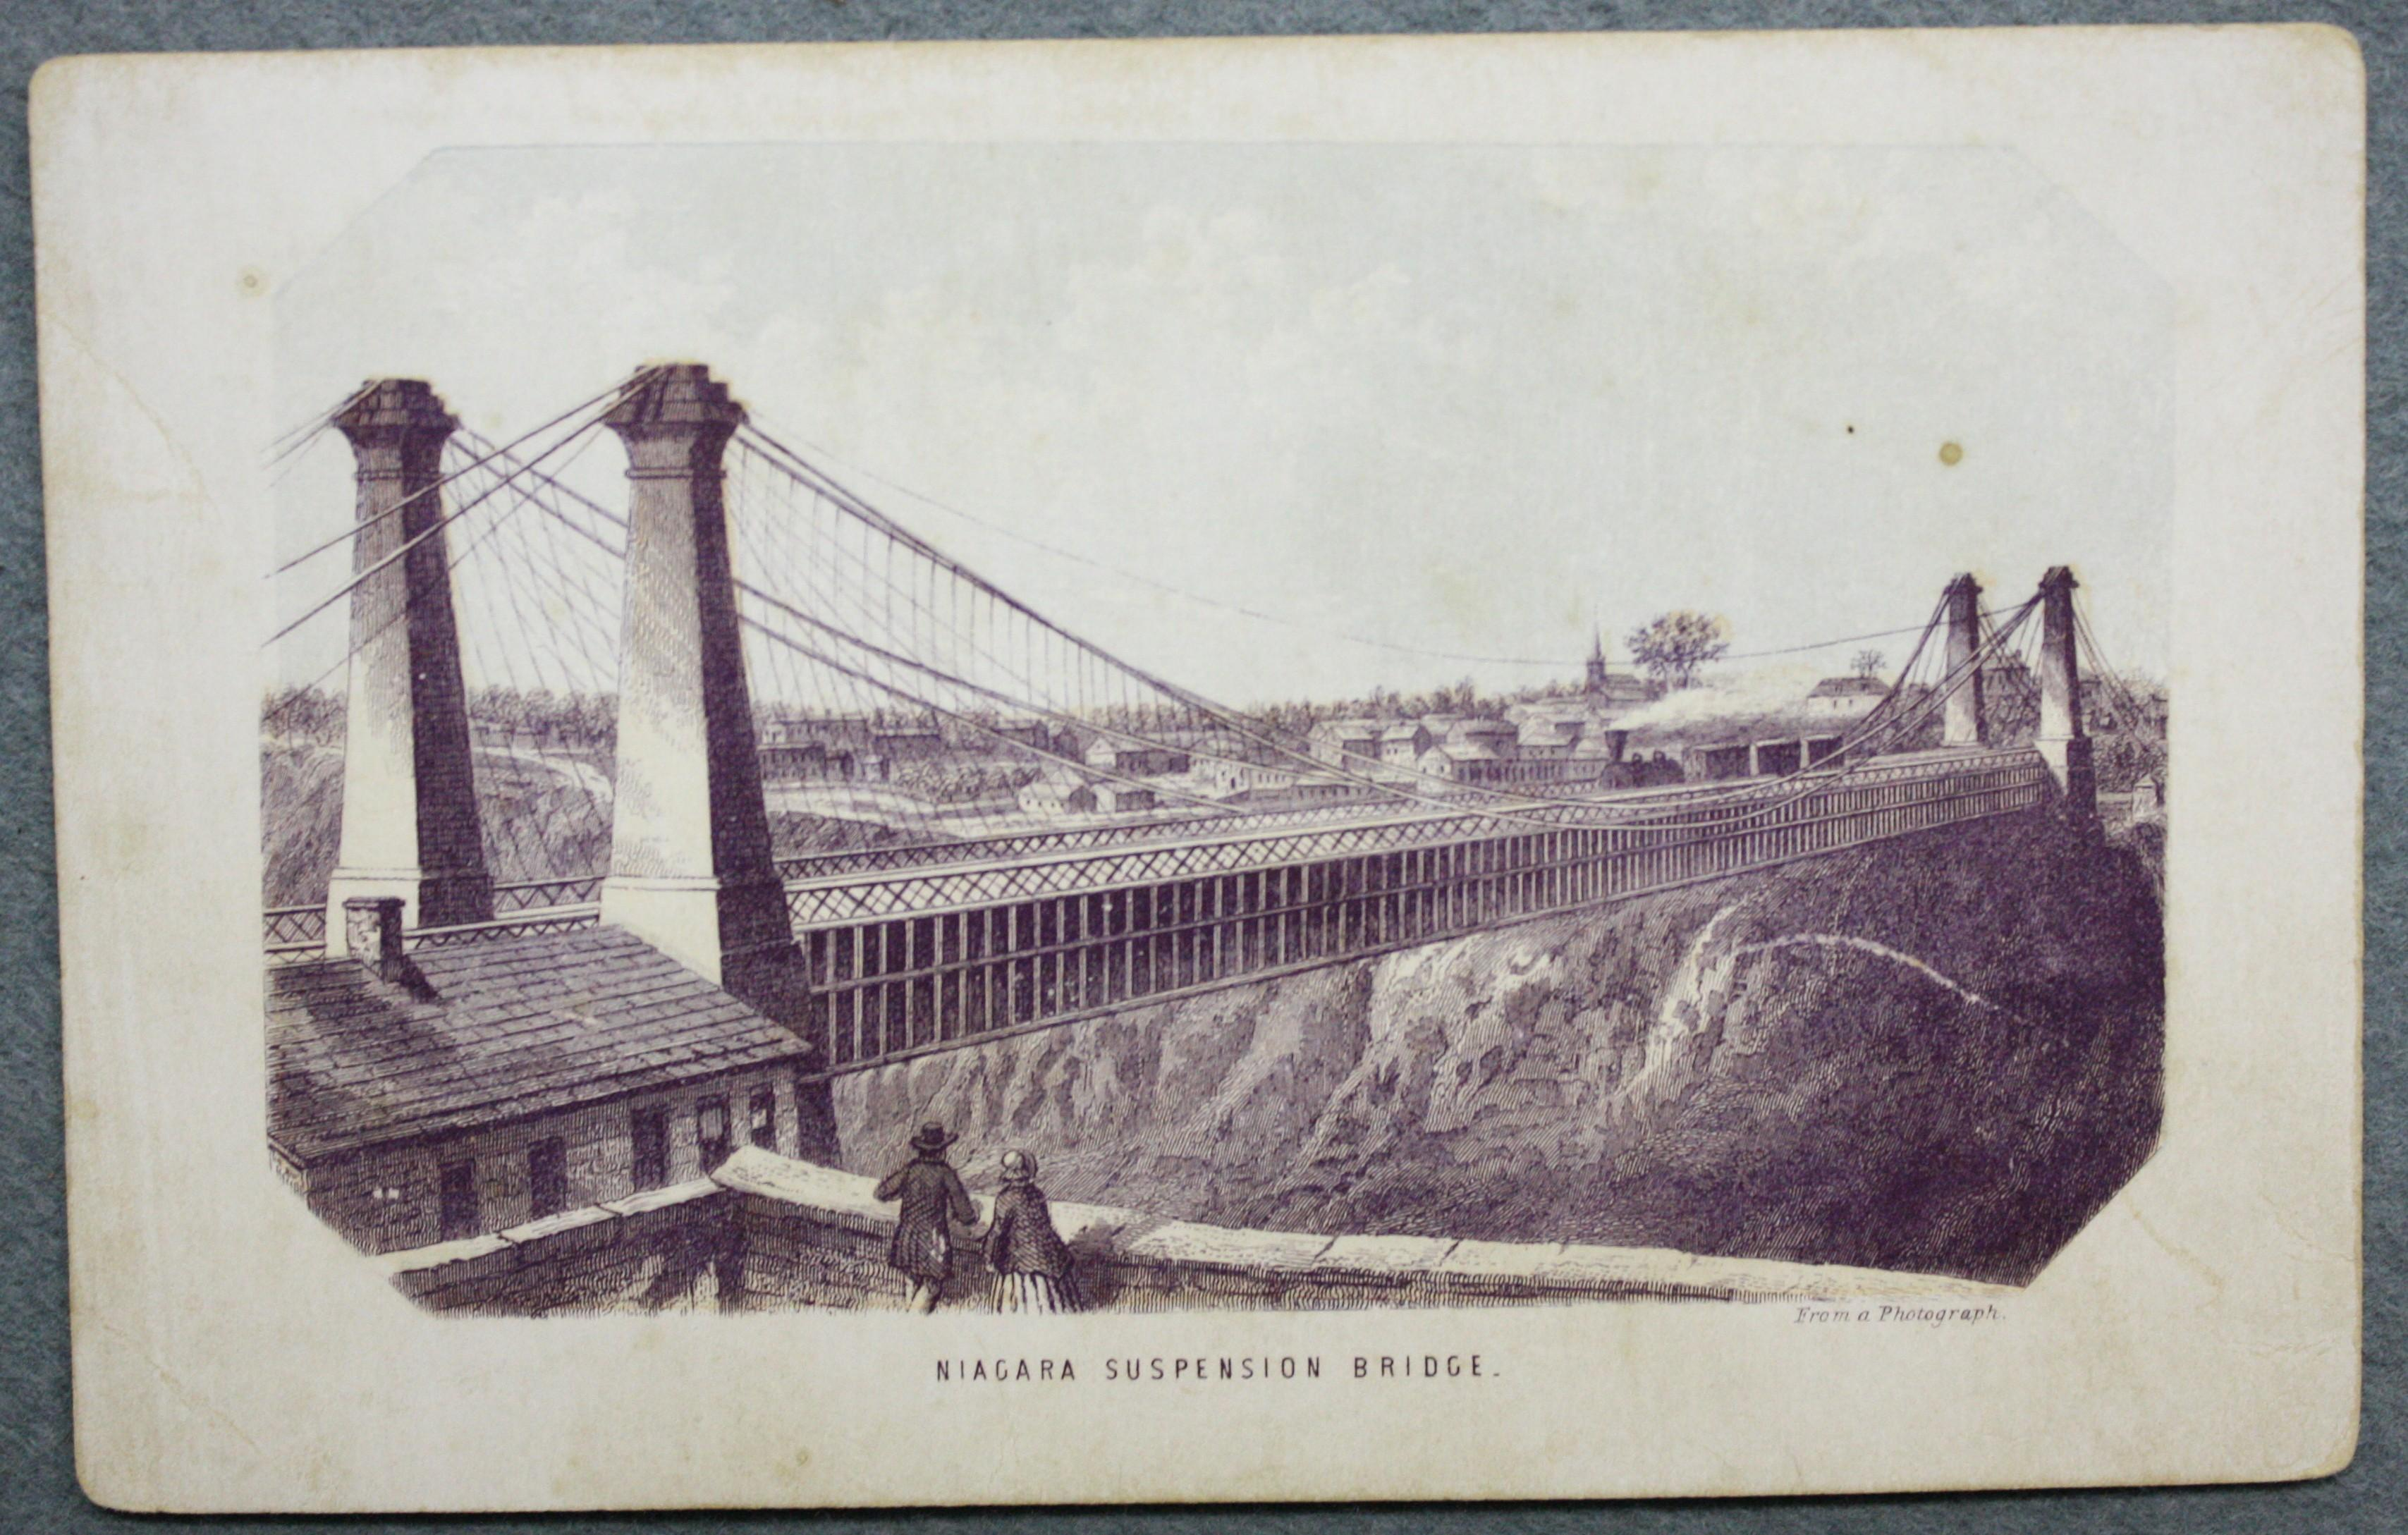 Photograph on heavy card of the Railyway Suspension Bridge. Four stone pyolons form the main supports for  the suspension cables. They taper as they go up, then flair out slightly at the cap. thick cables stretch from beyond the bridge to the left to anchor points beyond the bridge. Then up to the pylons and sink down to the middle of the bridge where they swoop back up to rejoin the next pair of pylons and then back down on the US side. A wooden structure makes the bridge top and incasing for the roadway structure beneath the railway top. A single train is on the top of the bridge with three cars and smoke trailing from the engine. A stone building is in the foreground with two people stnaidng next to it. There is a shingled roof and a chimney at the centre of the of the building. In the far background there are many buildings standing in what should be Niagara Falls New York.